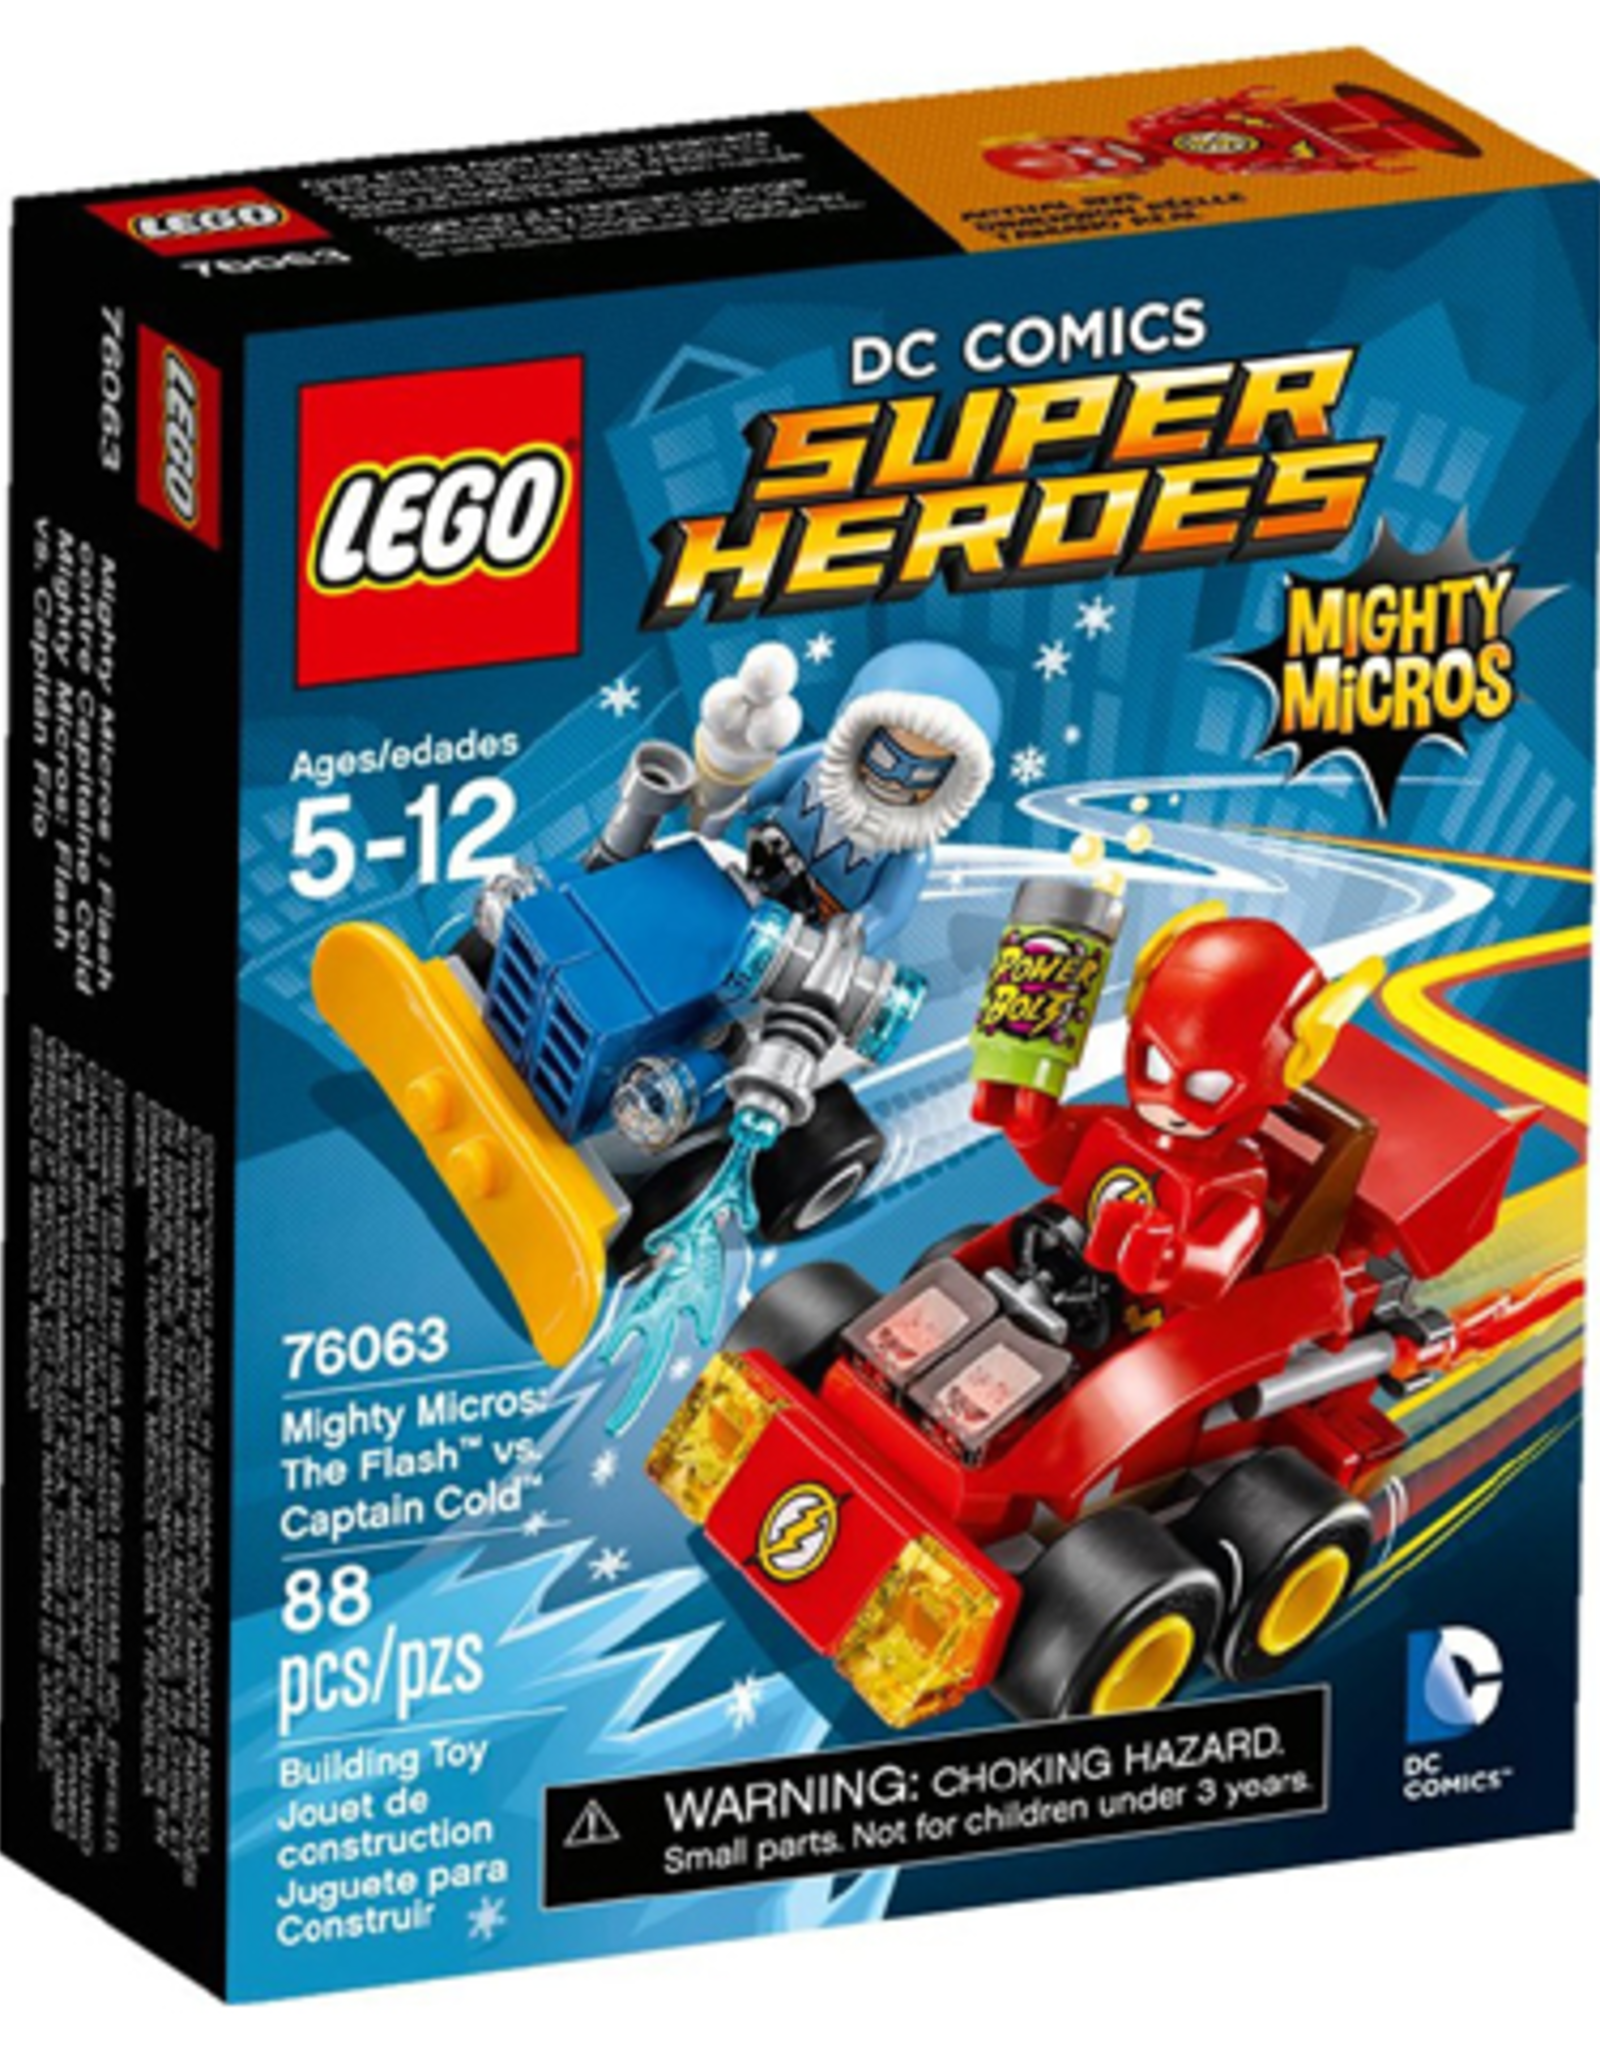 LEGO LEGO 76063 The Flash vs. Captain Cold SUPER HEROES